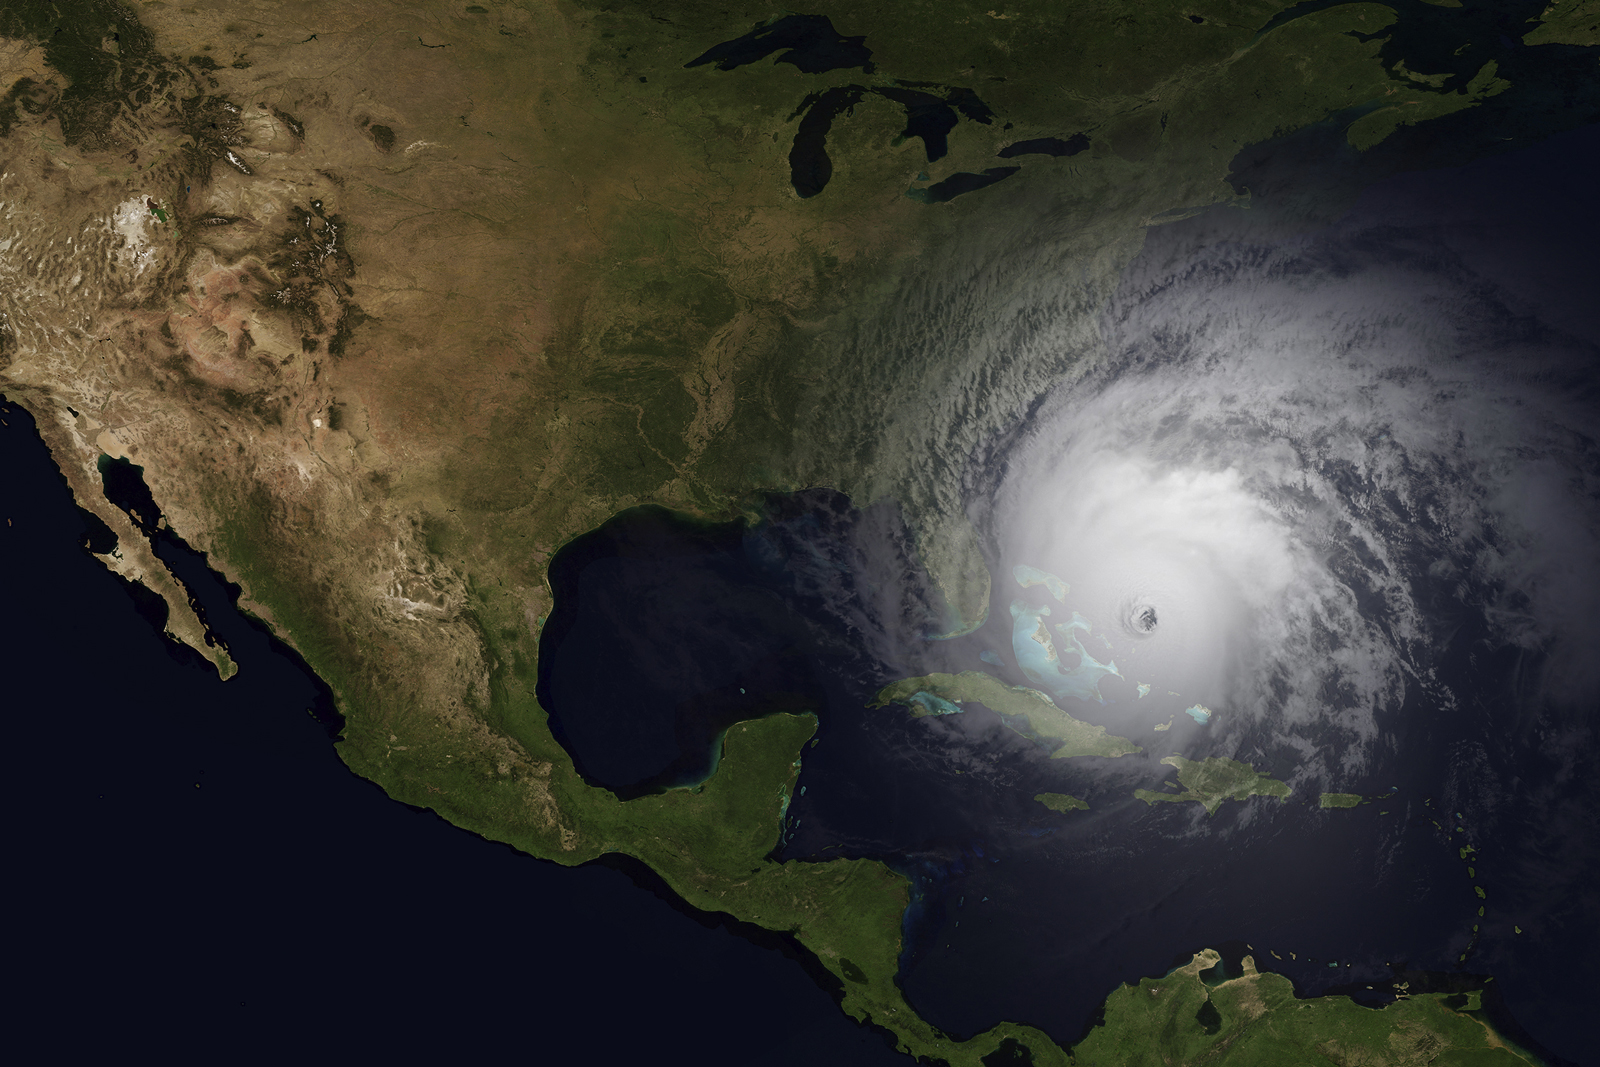 an overhead map view of a hurricane headed for the eastern seaboard